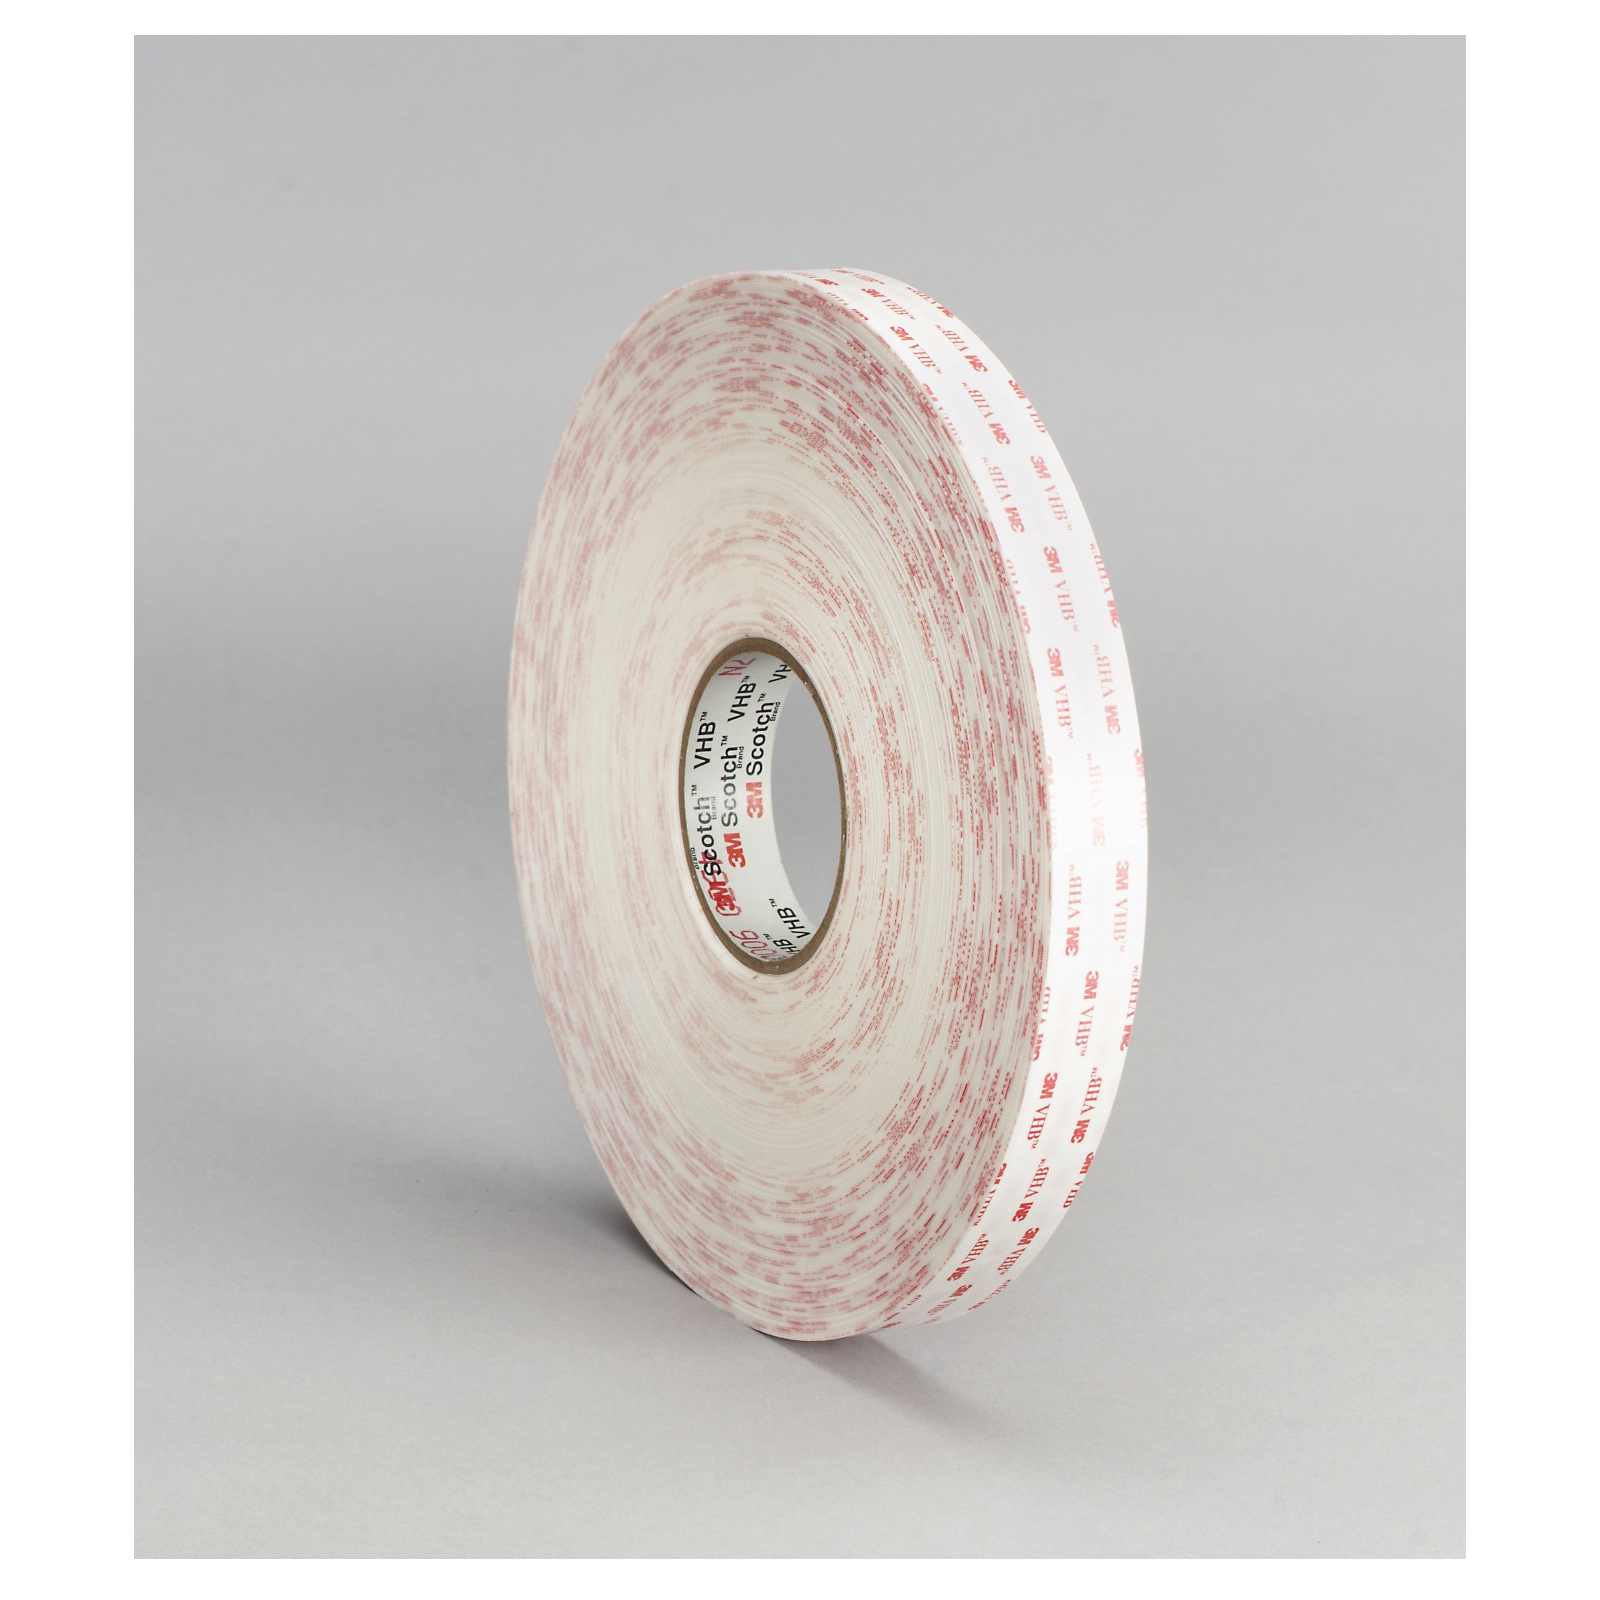 3M™ VHB™ 021200-63383 Pressure Sensitive Double Sided Bonding Tape, 36 yd L x 2 in W, 0.045 in THK, General Purpose Acrylic Adhesive, Acrylic Foam Backing, White